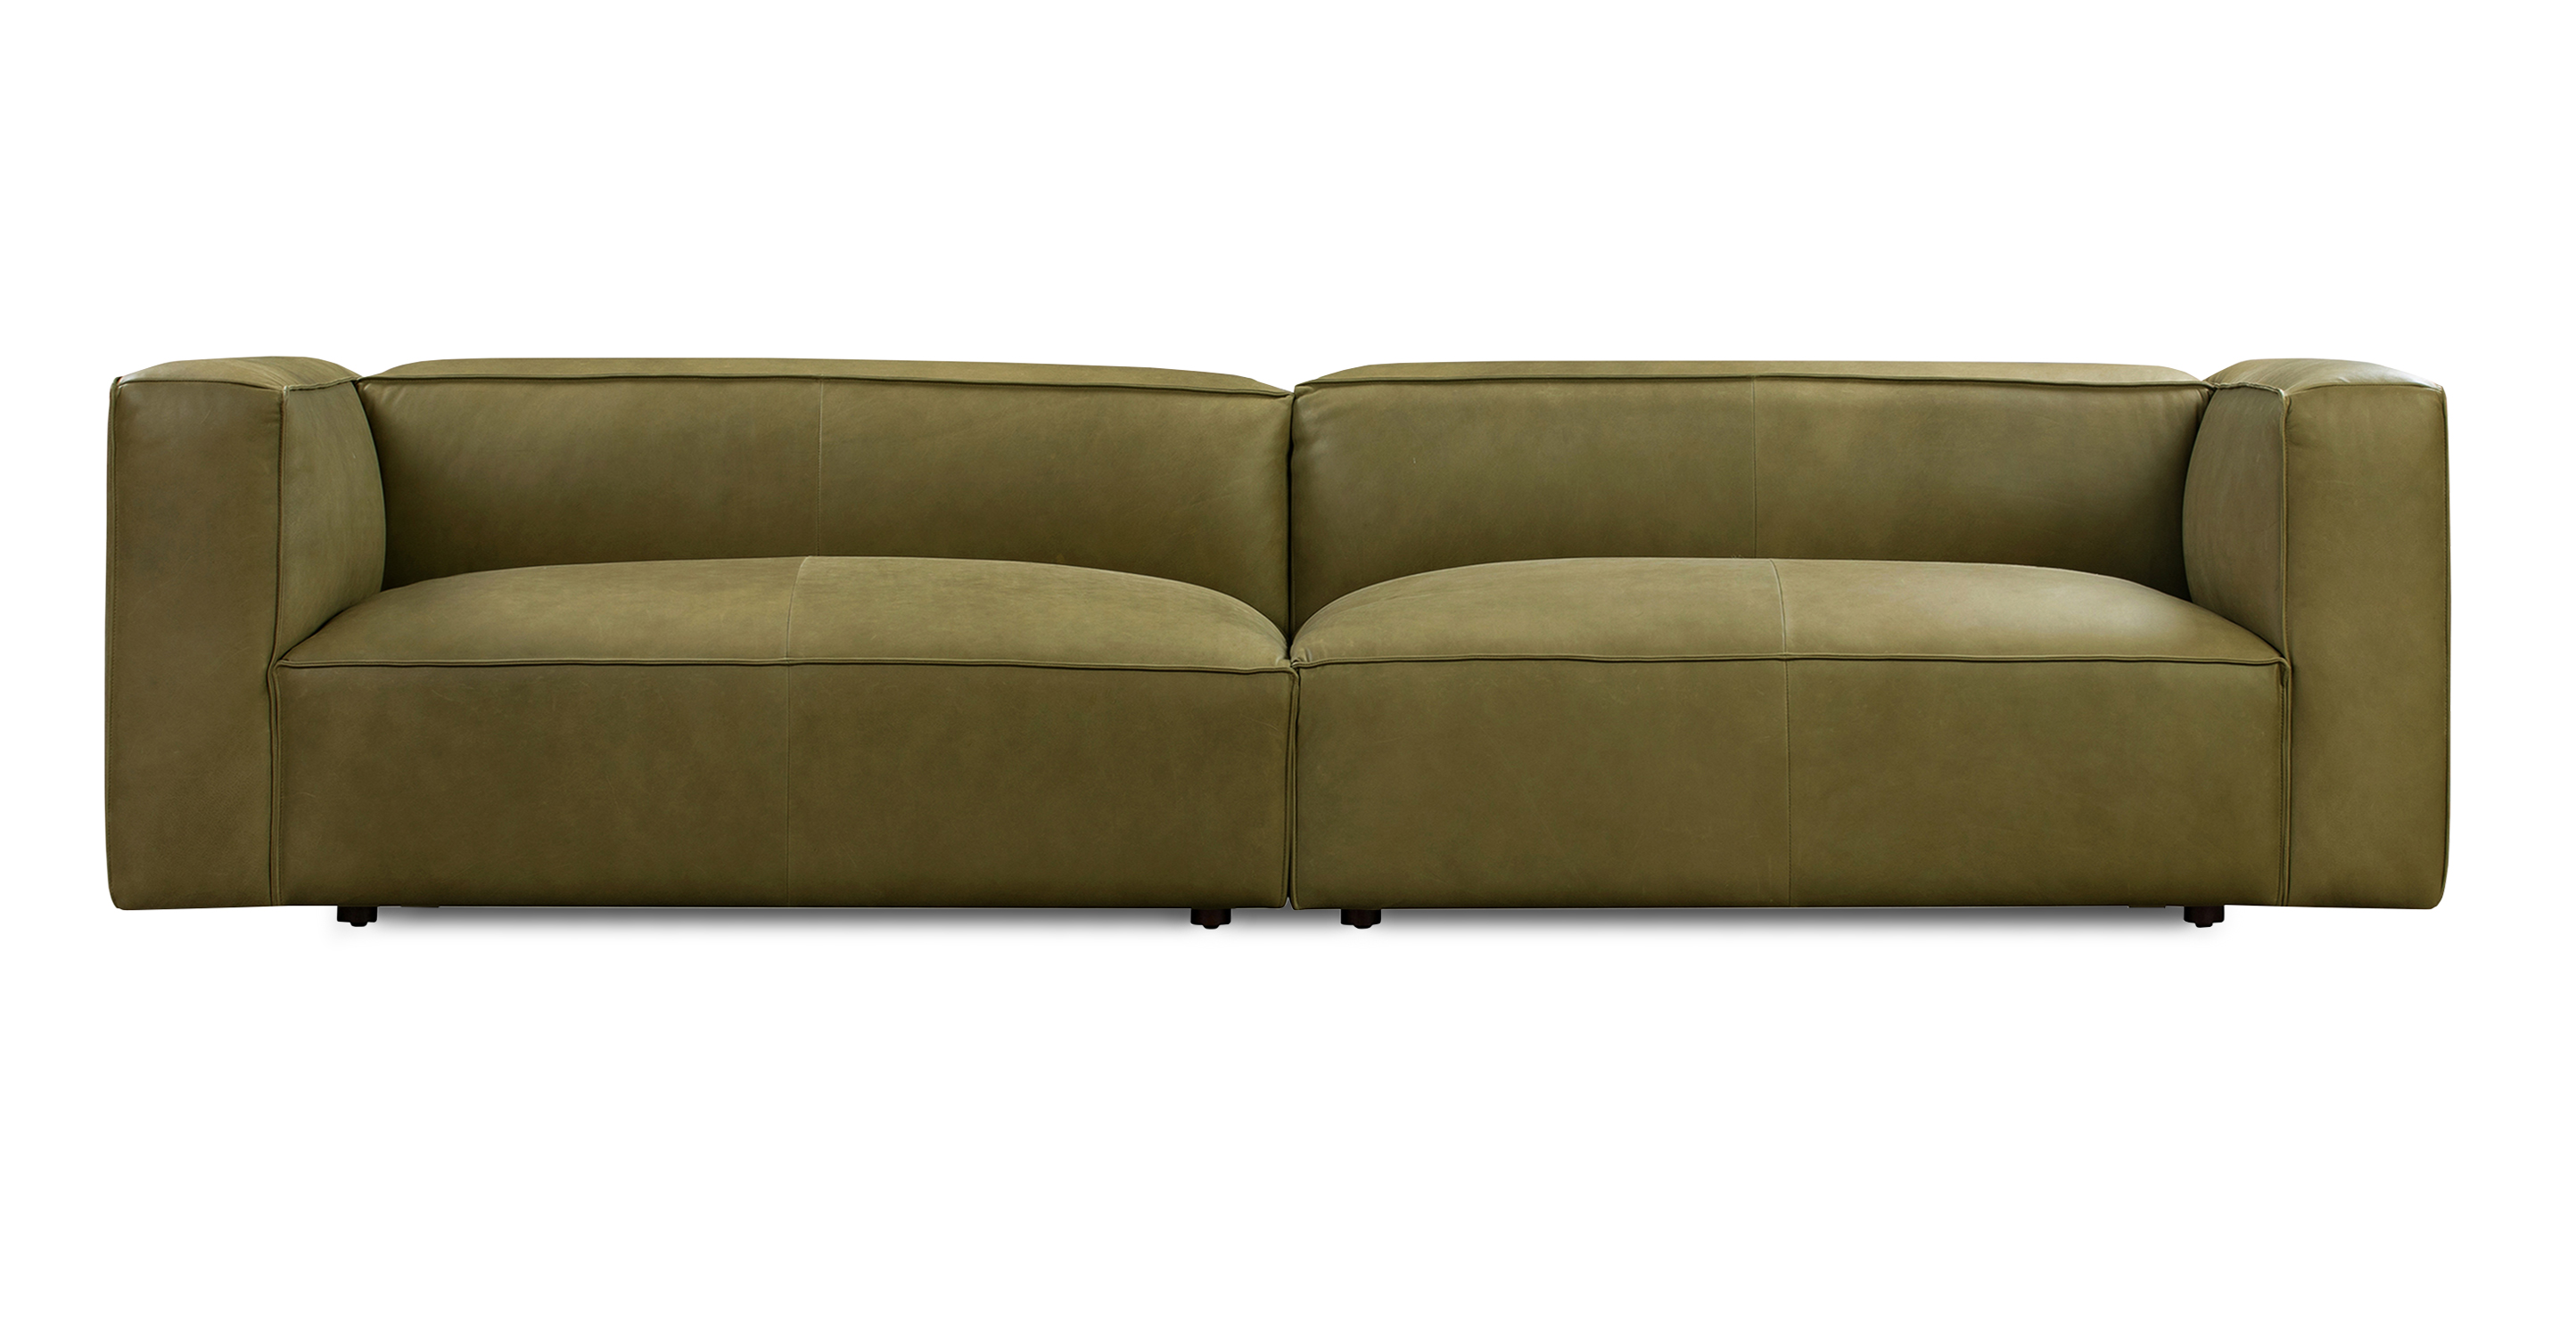 "Soho 110"" Leather Sofa, Verona Olive"